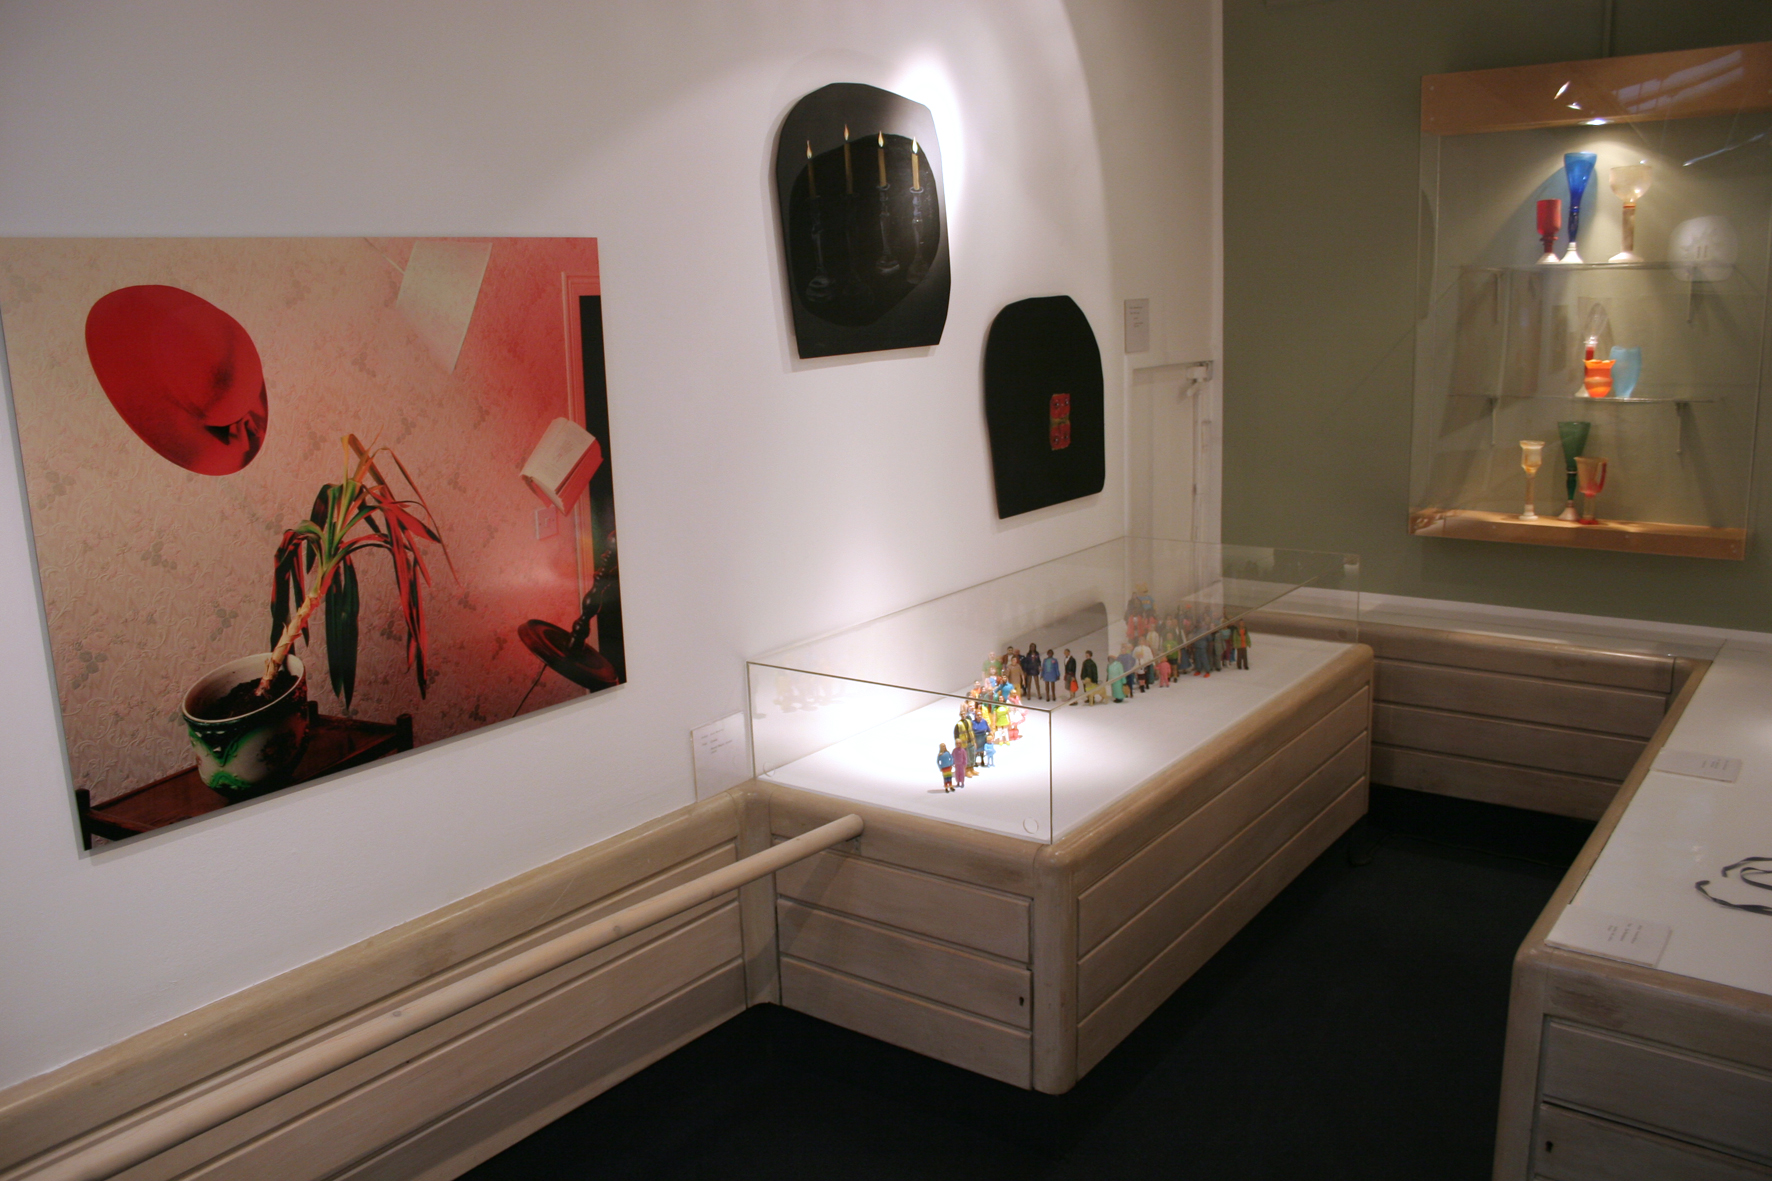 Out of the Ordinary exhibition 2